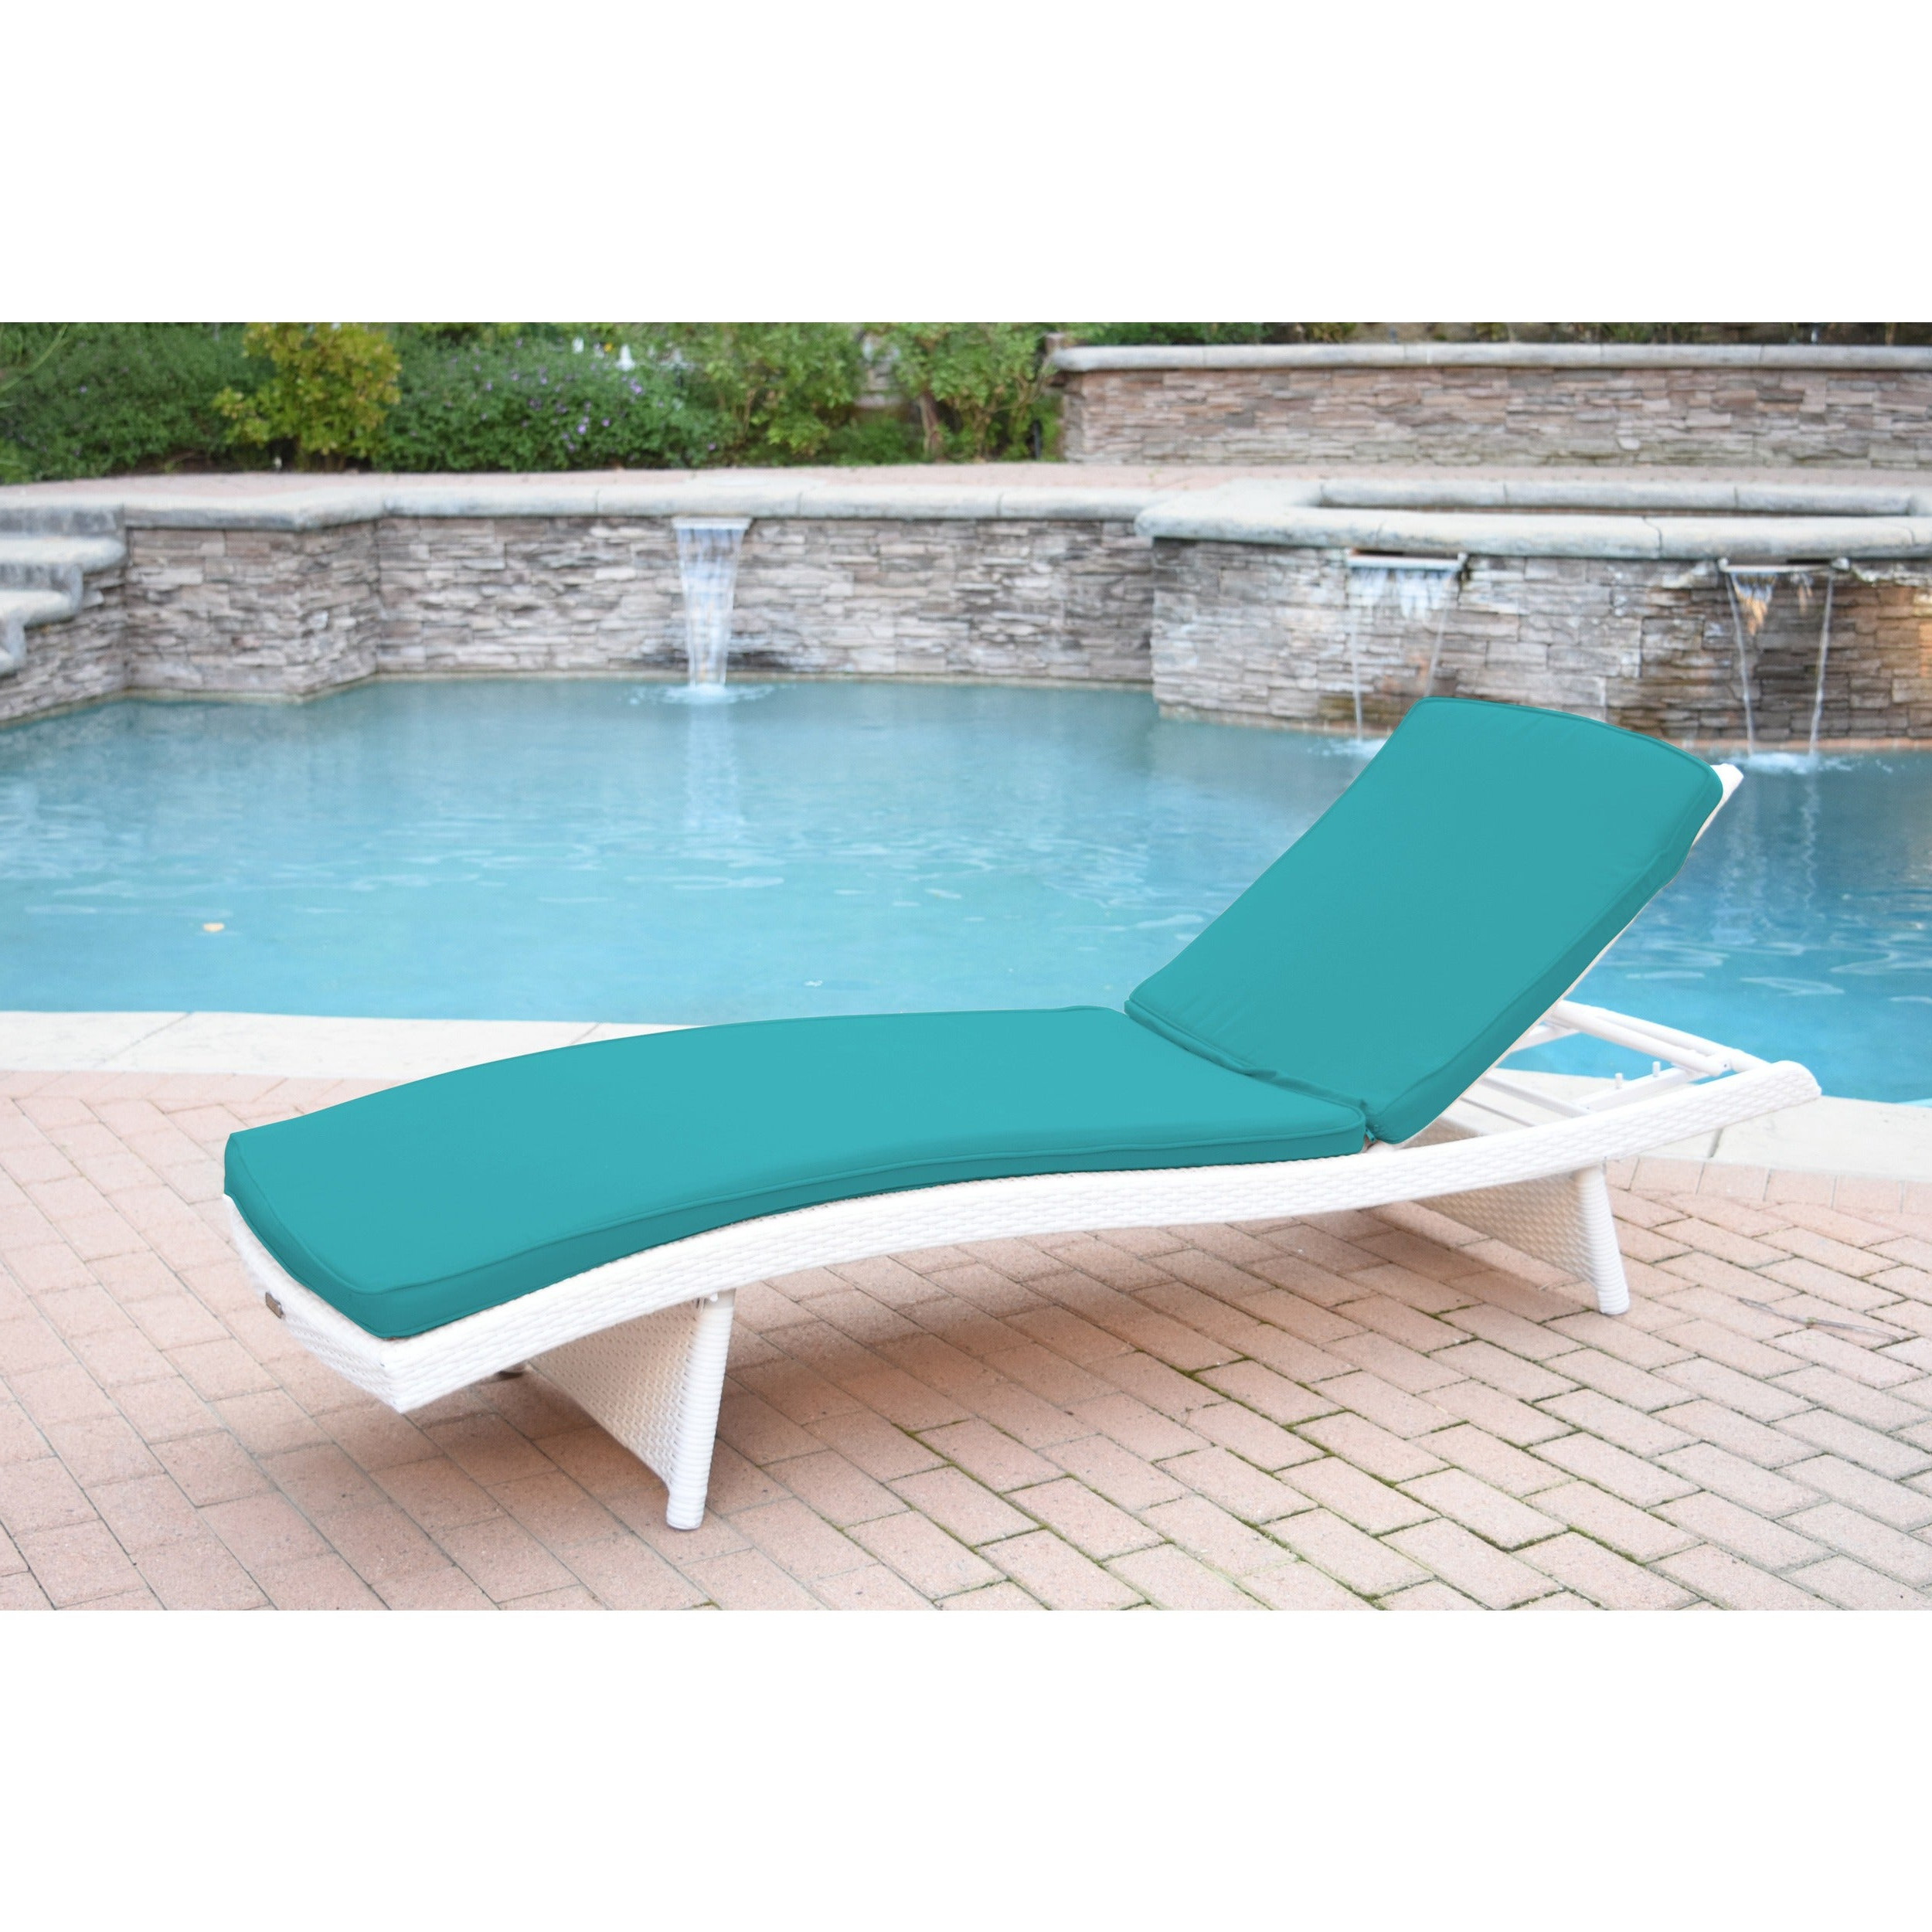 Most Recent Wicker Adjustable Chaise Loungers With Cushion With Regard To White Wicker Adjustable Chaise Lounger With Cushions (Gallery 21 of 25)